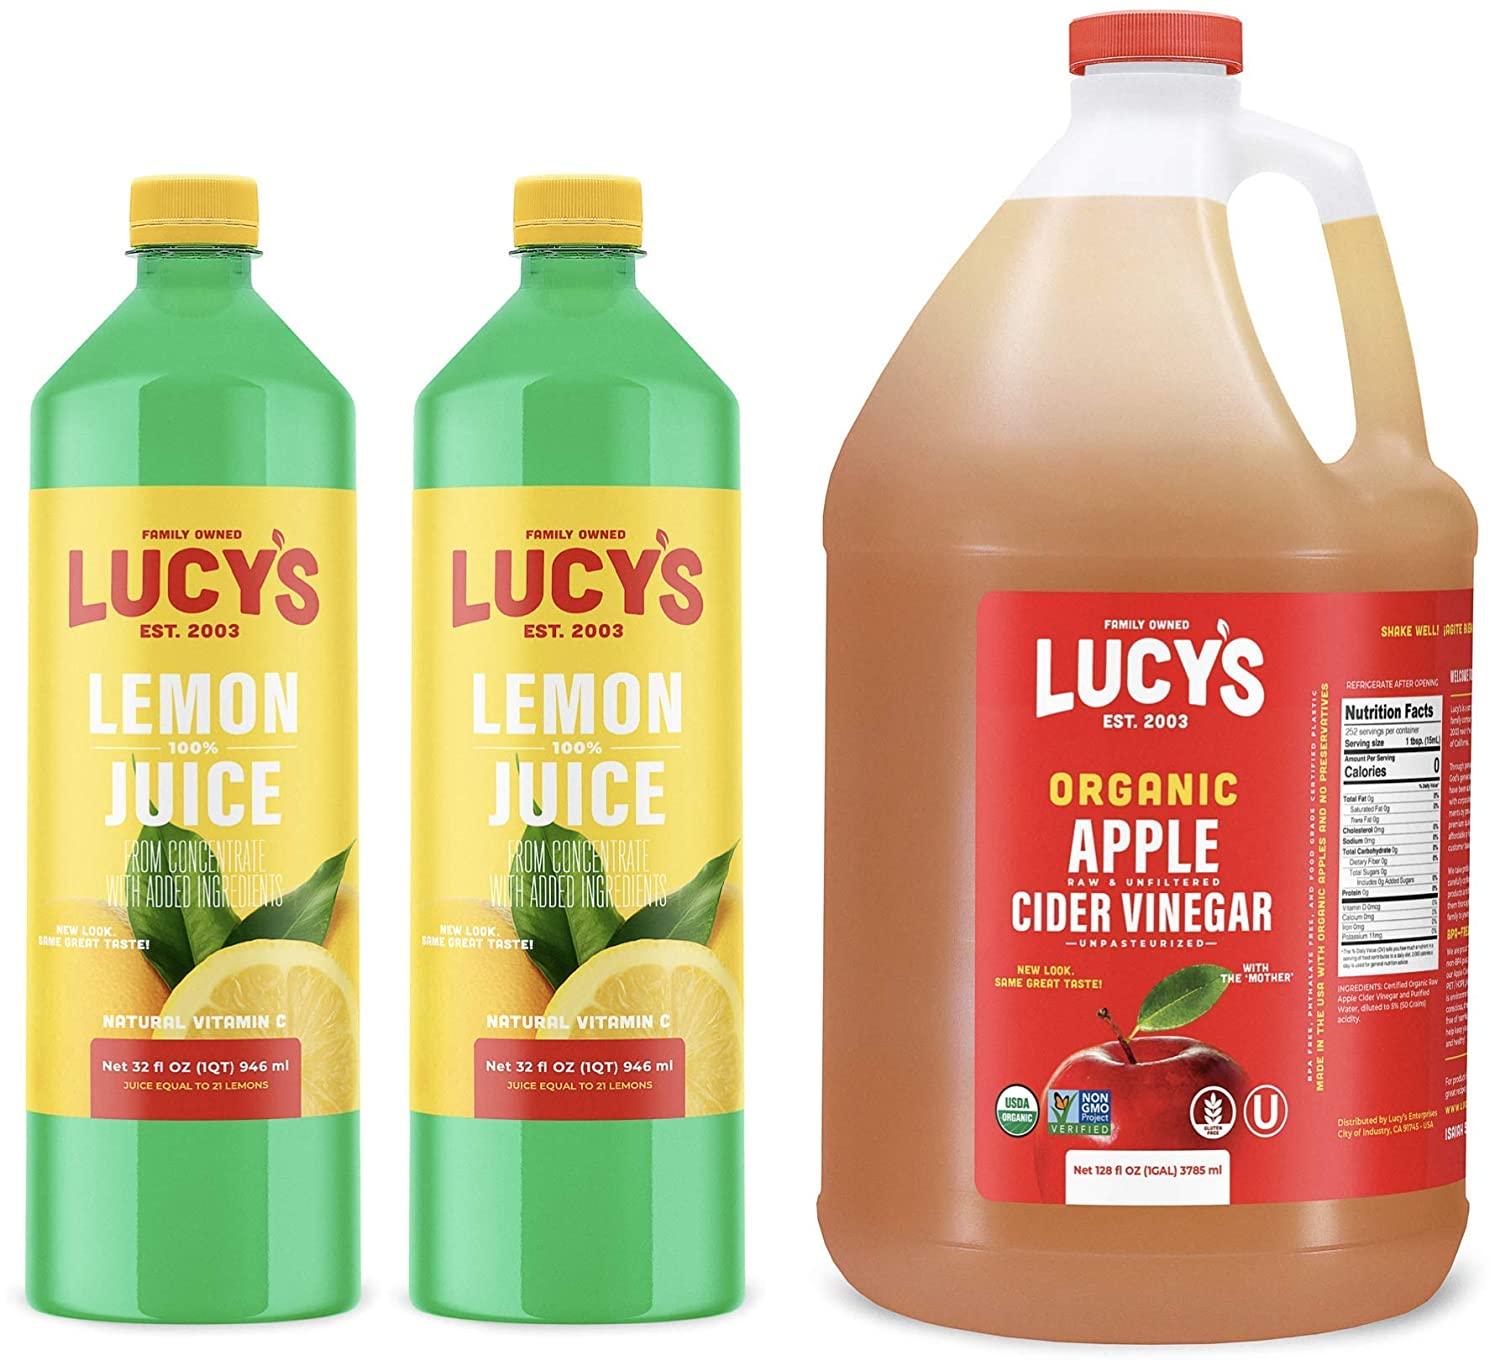 Lucy's Family Owned - Lemon Juice & Organic Apple Cider Vinegar Gallon (Bundle)